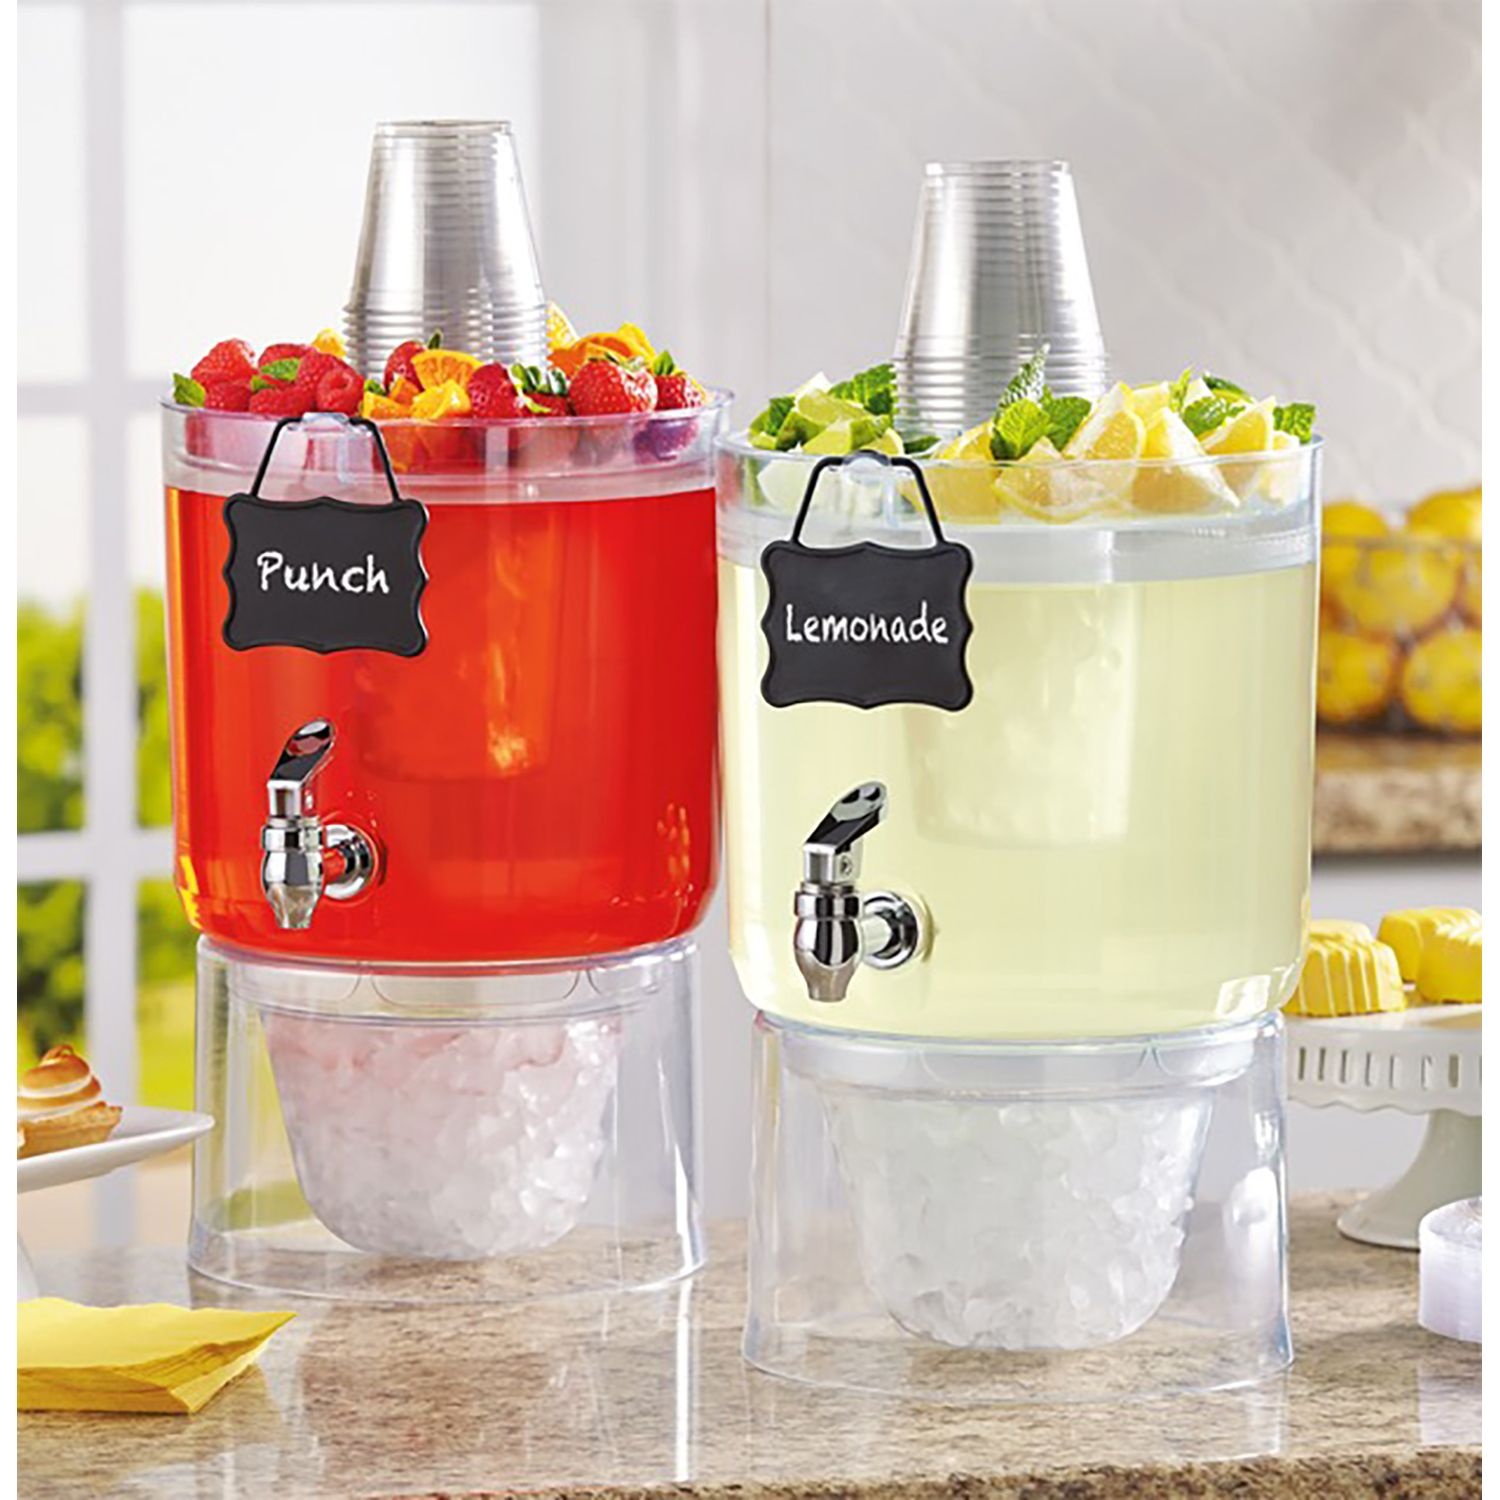 NEW Daily Chef 2 1.75 Gallon Stackable Beverage Dispensers w/ Stand Spigot Jug | eBay